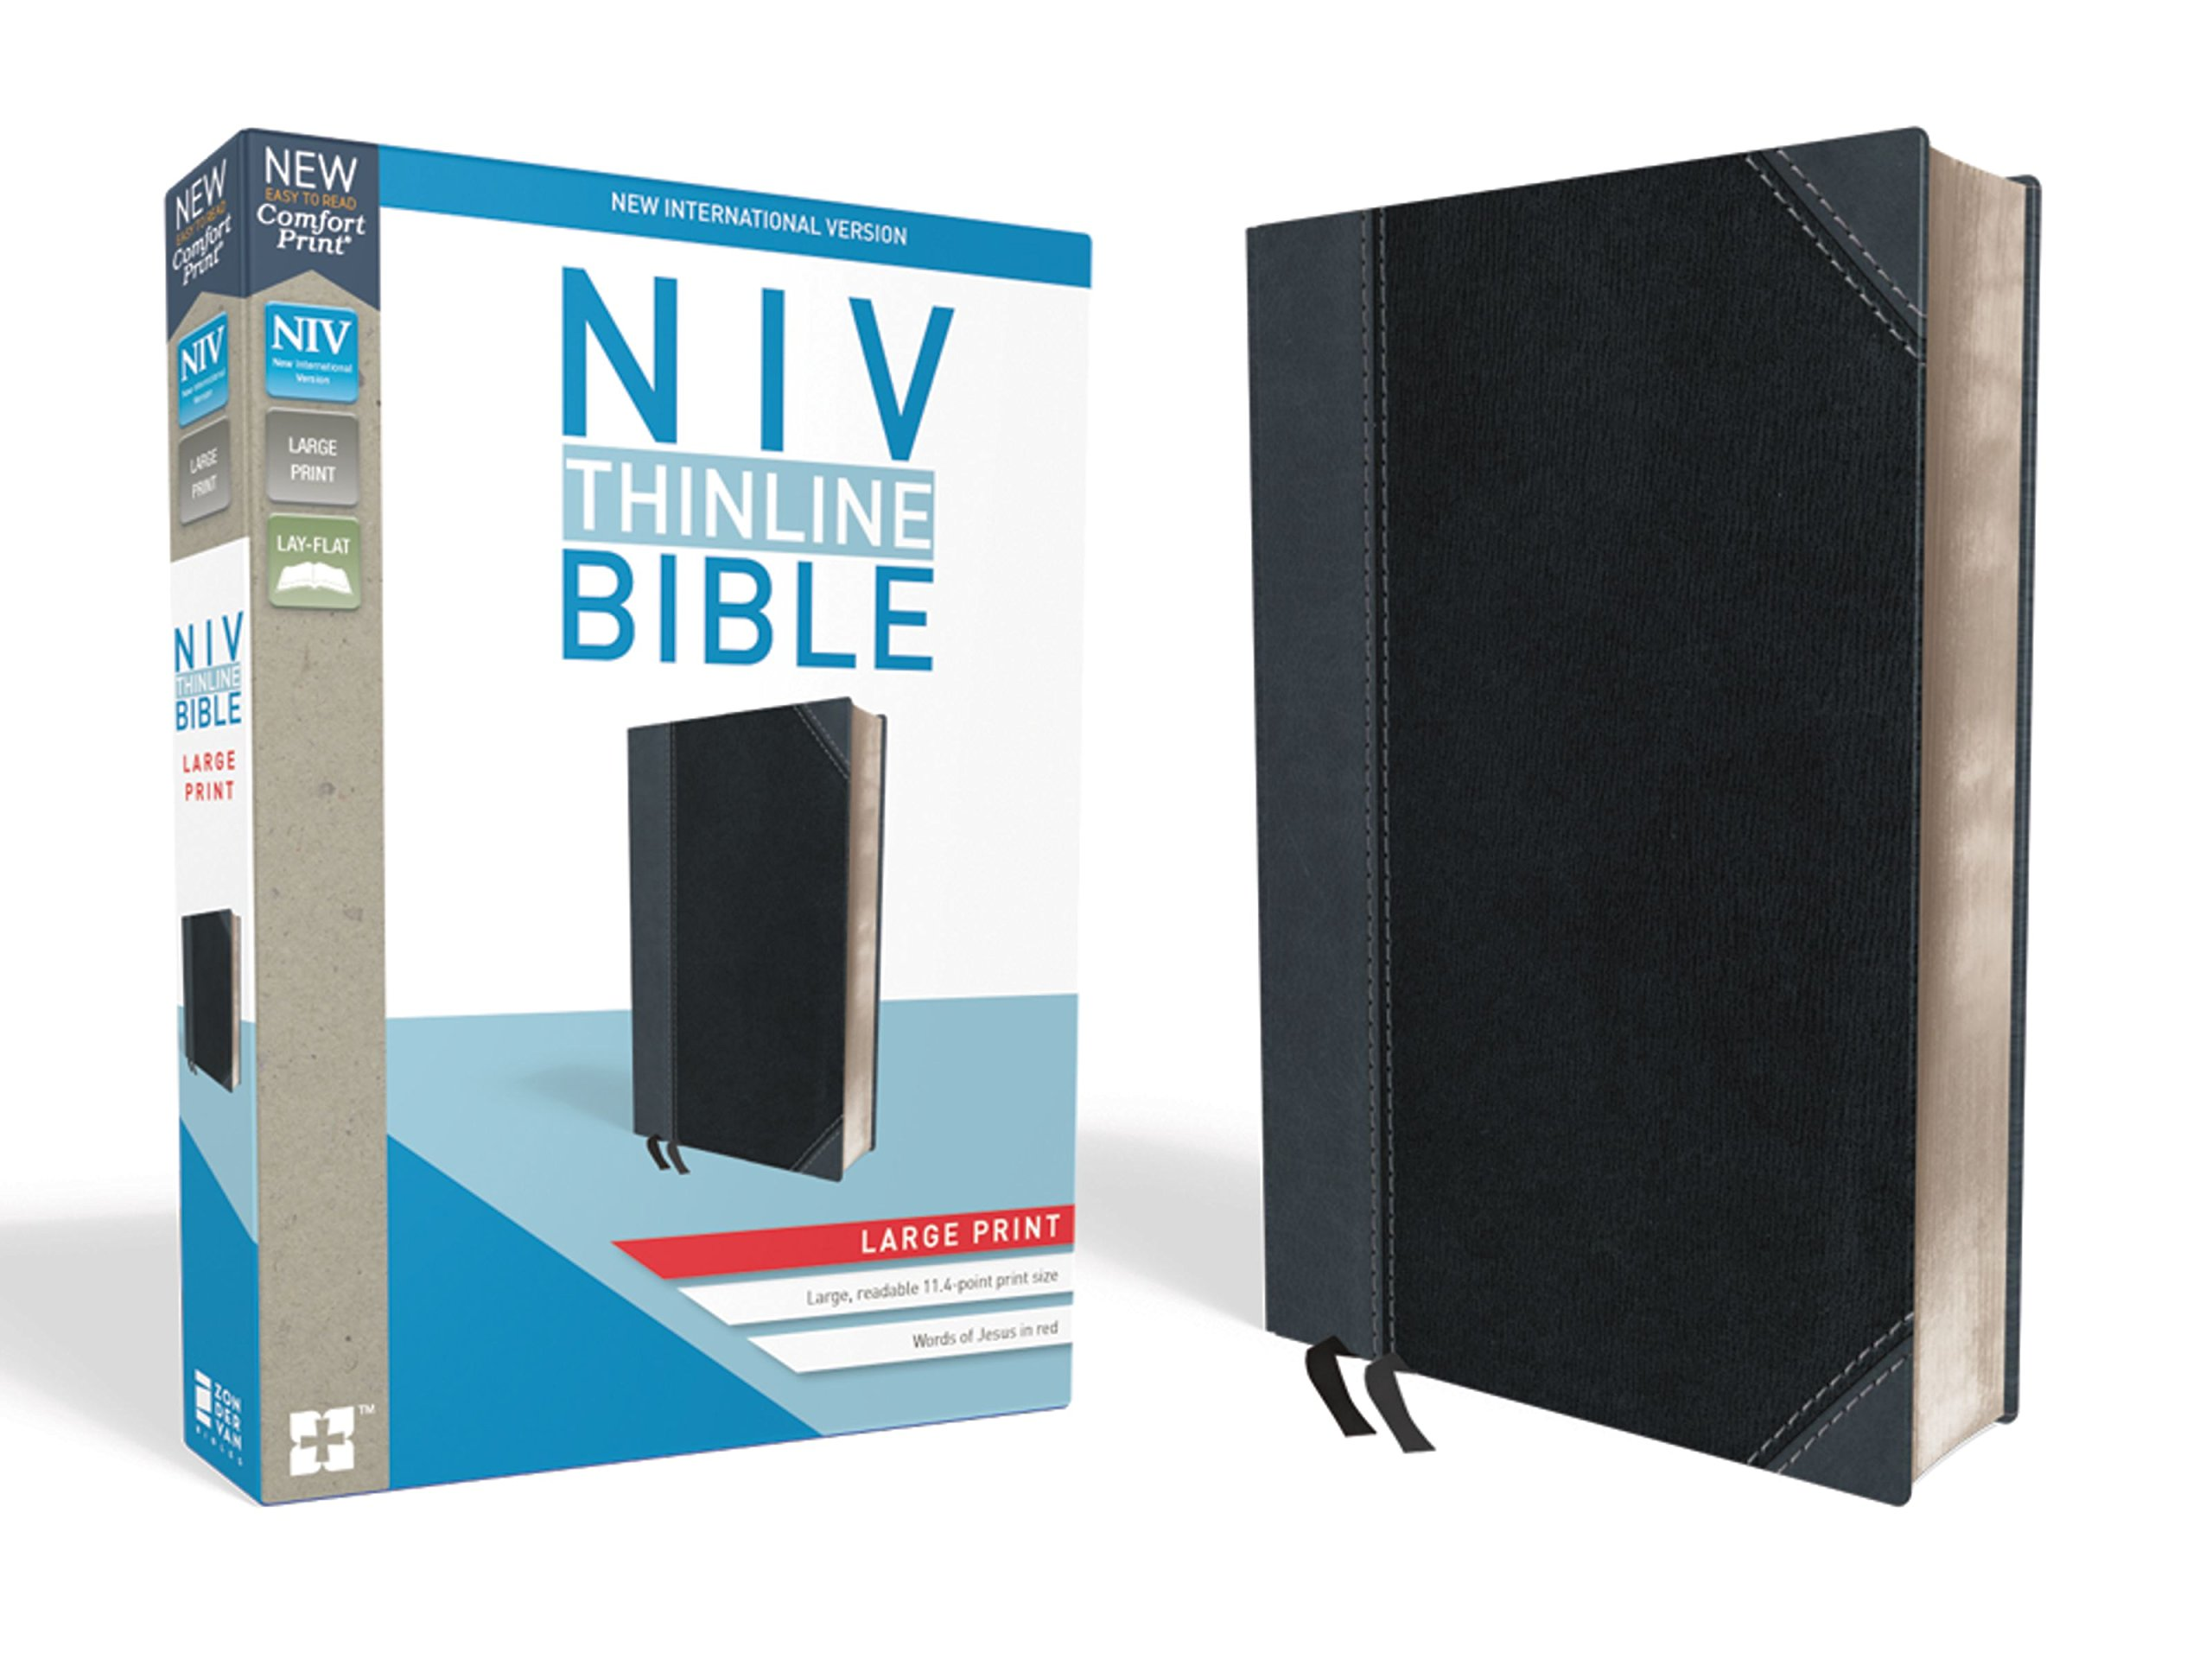 NIV, Thinline Bible, Large Print, Leathersoft, Black/Gray, Red Letter Edition, Comfort Print by HarperCollins Christian Pub.